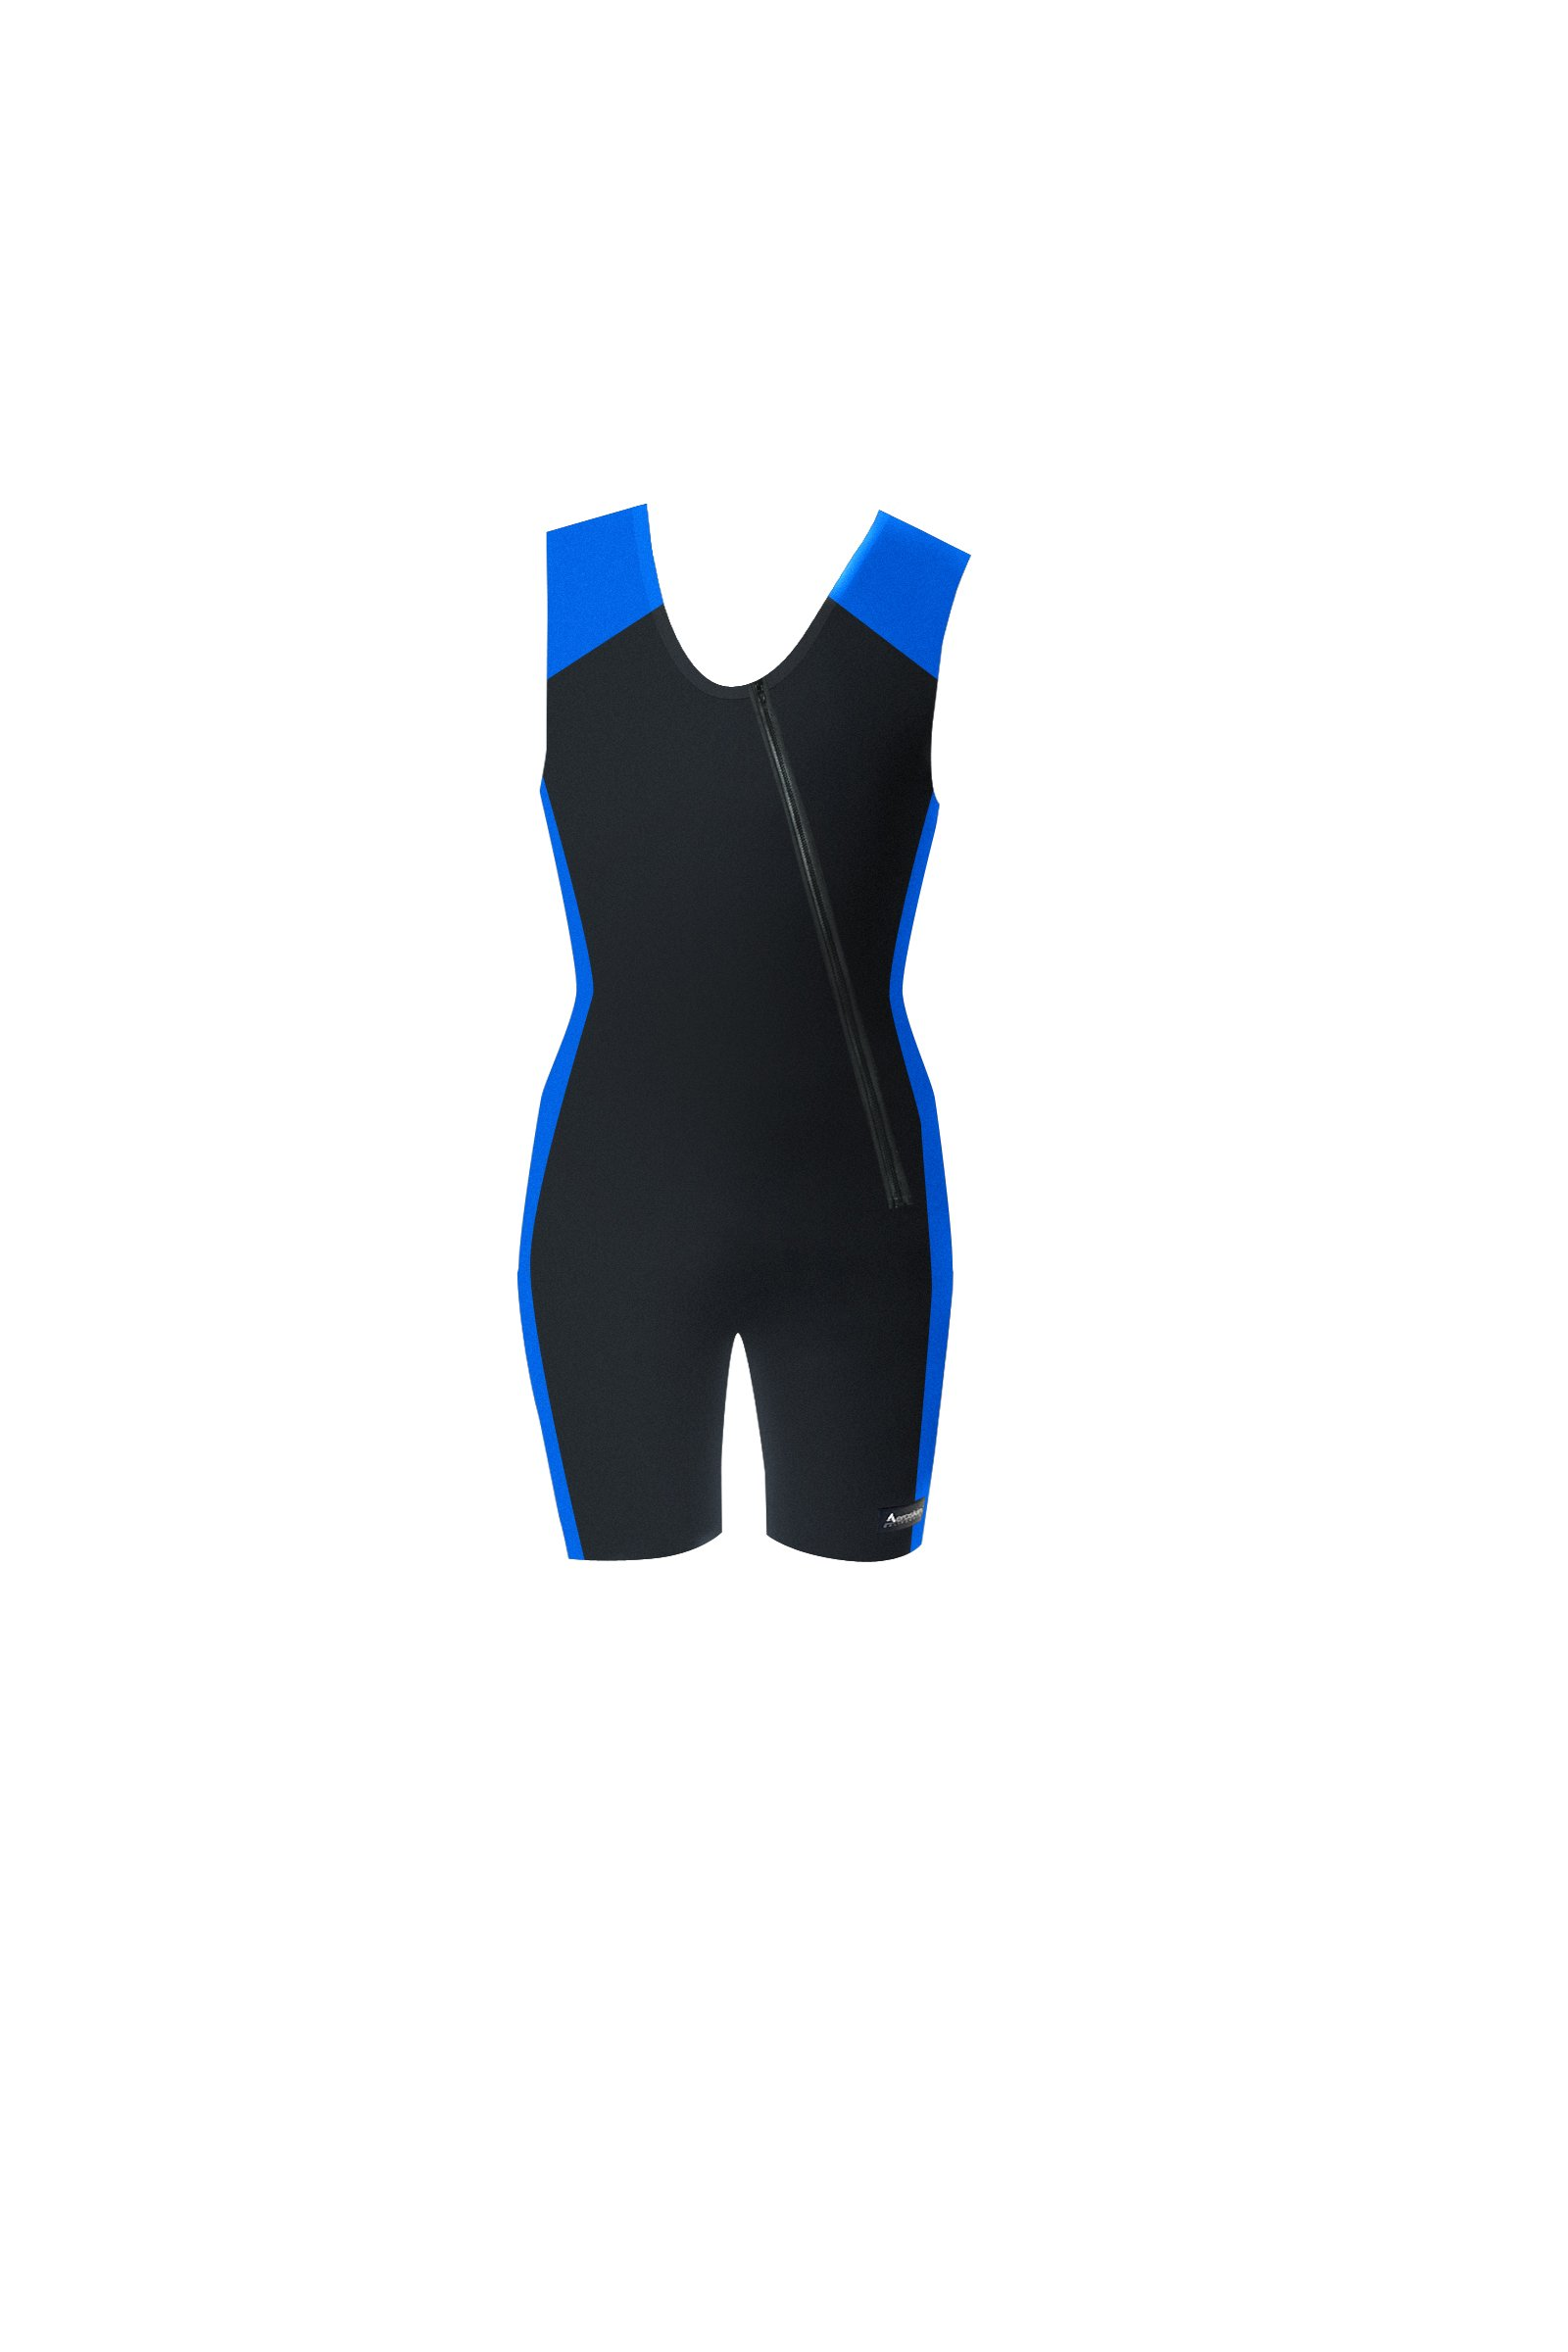 Aeroskin 1mm Neoprene Sleeveless Shorty with Slant Front Zip and Spine/Kidney Pad (Black/Blue, Large)